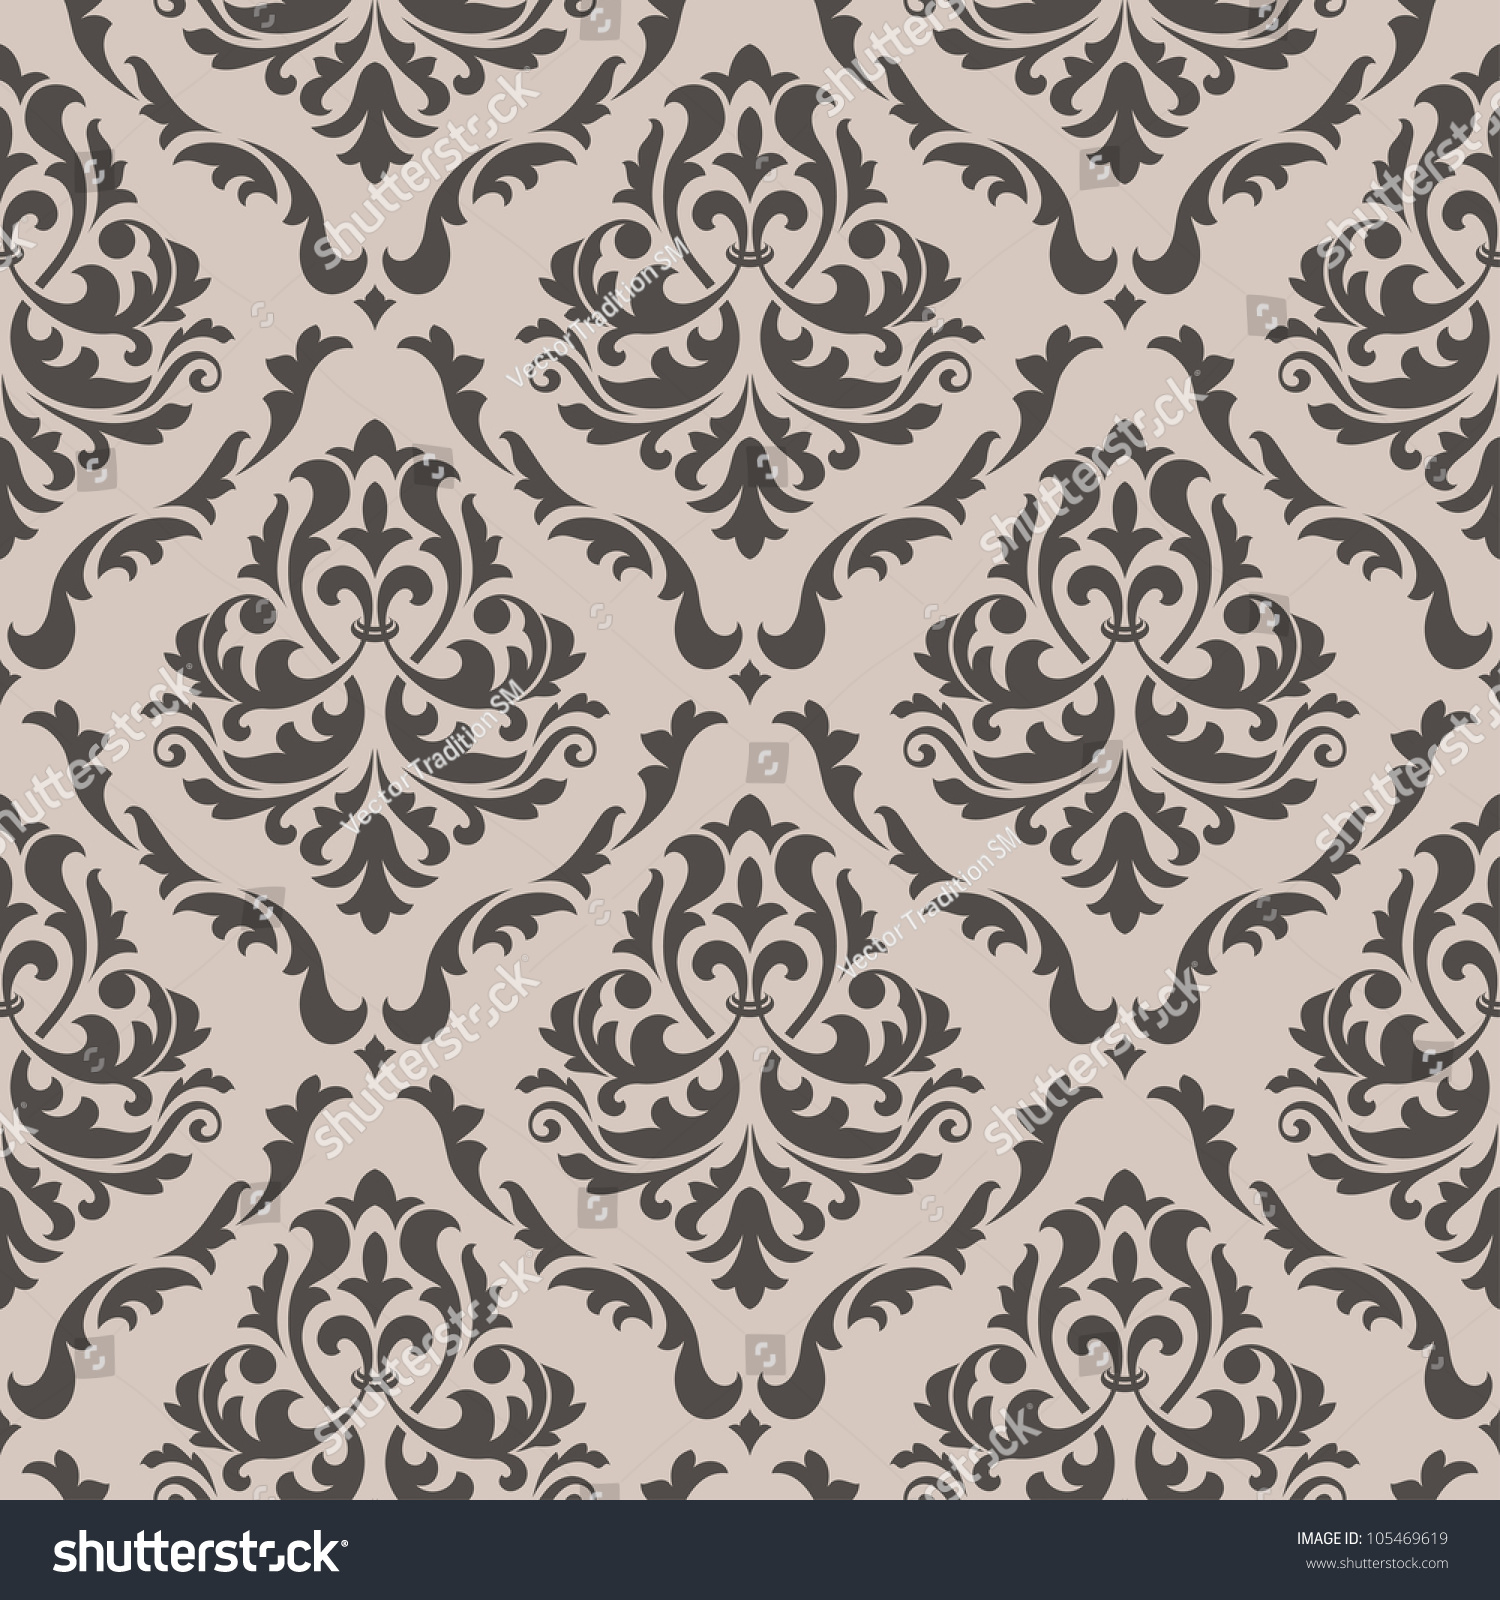 Seamless floral pattern background design victorian stock vector 105469619 shutterstock - Victorian design style style ...